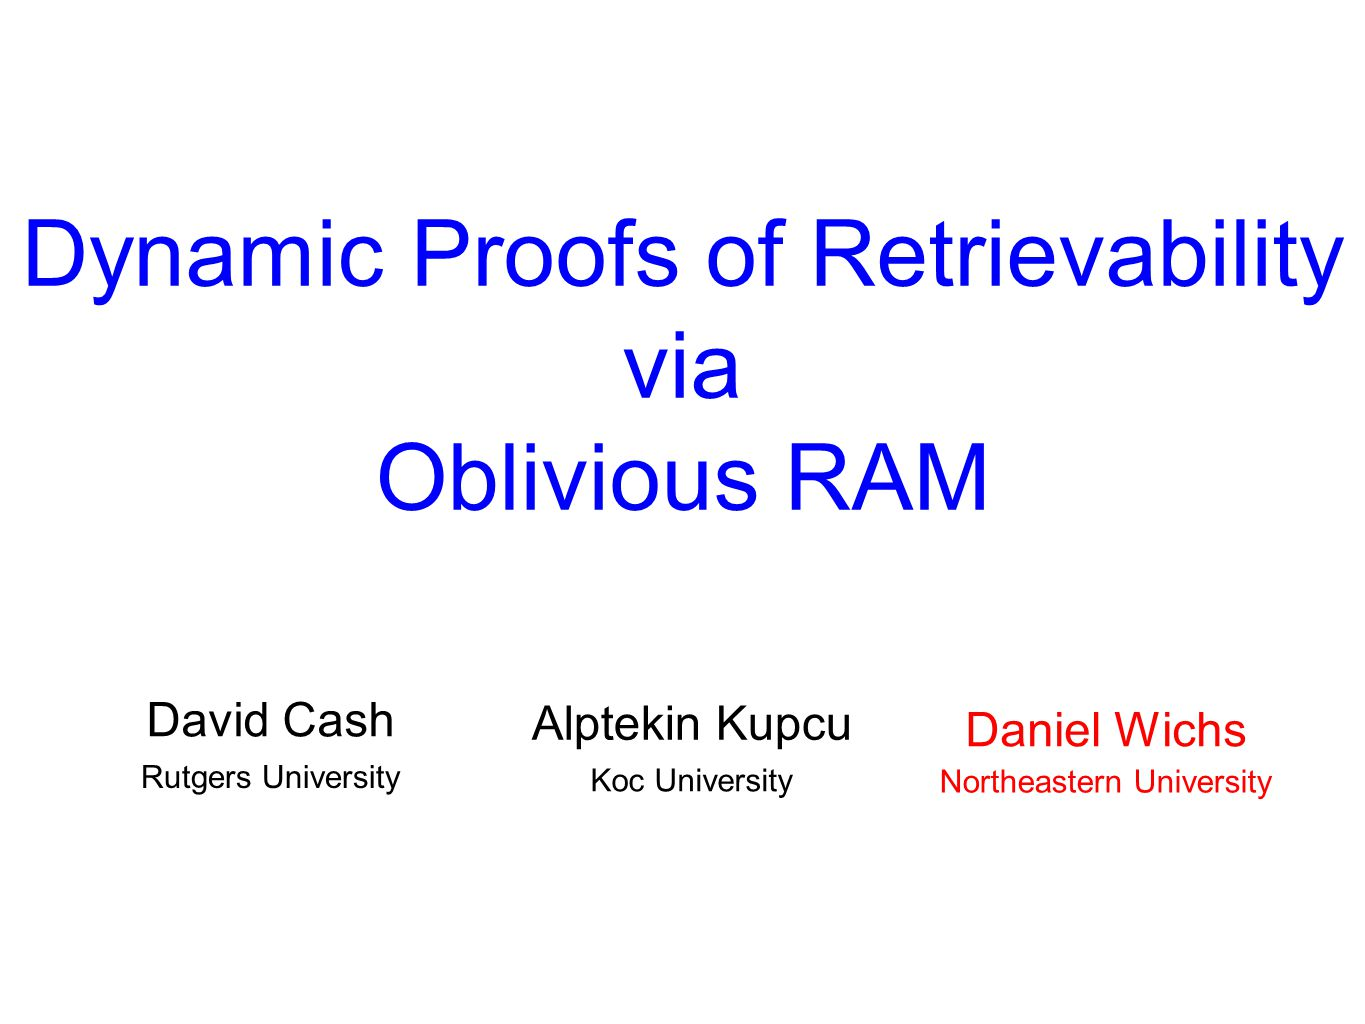 Dynamic Proofs of Retrievability via Oblivious RAM